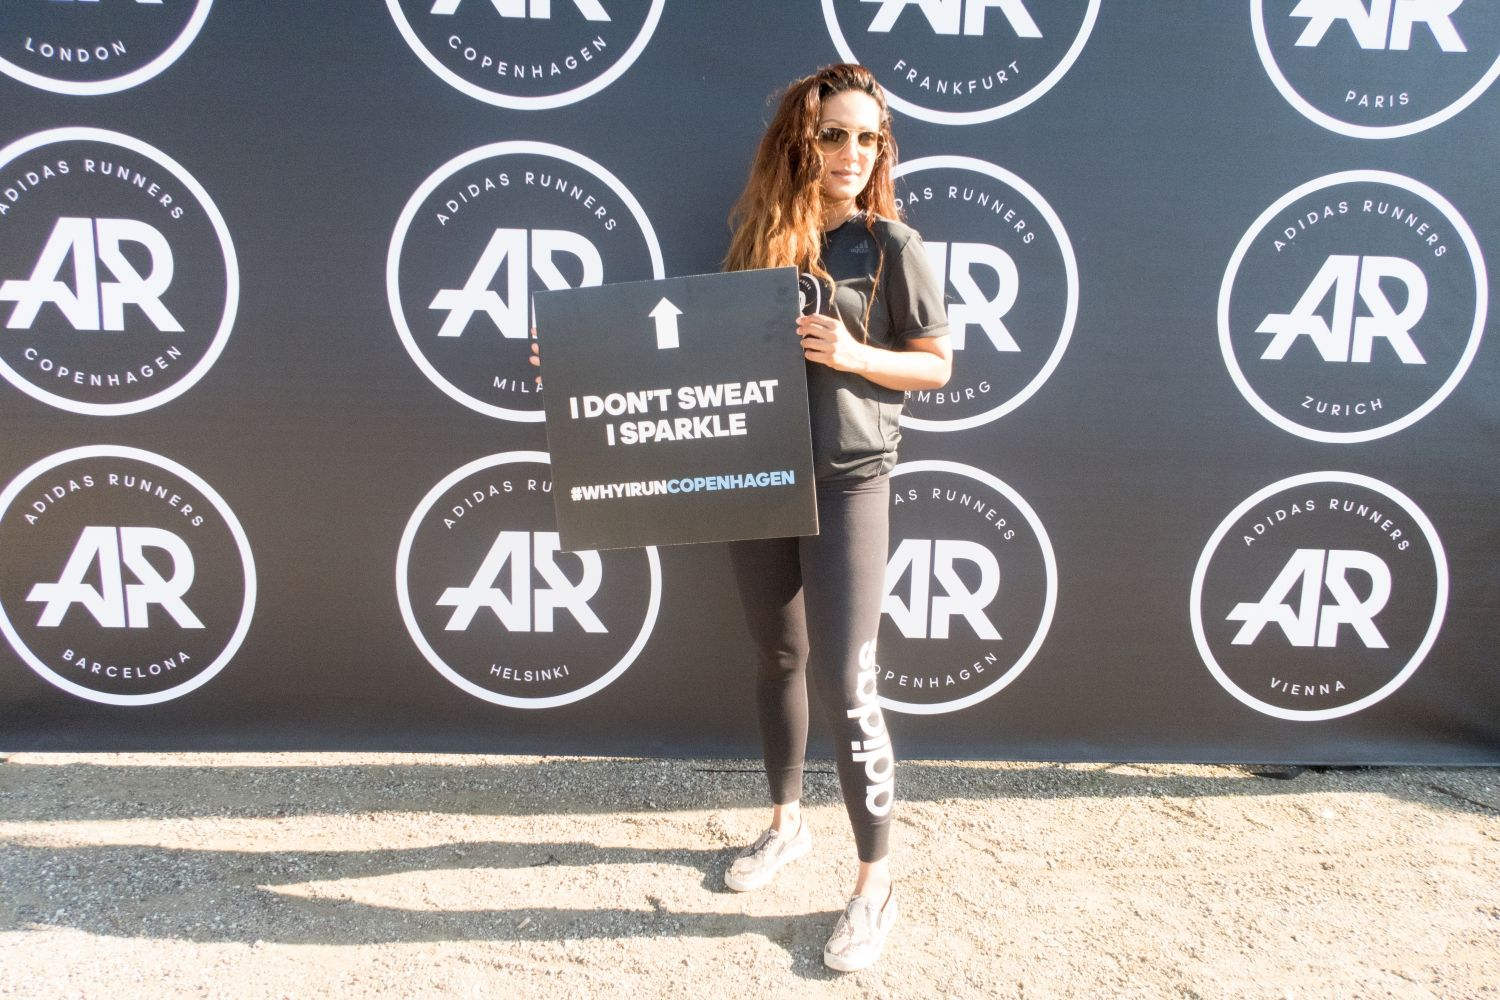 the Adidas Runners Race experience with my friend and influencer Francien Regelink in Copenhagen.